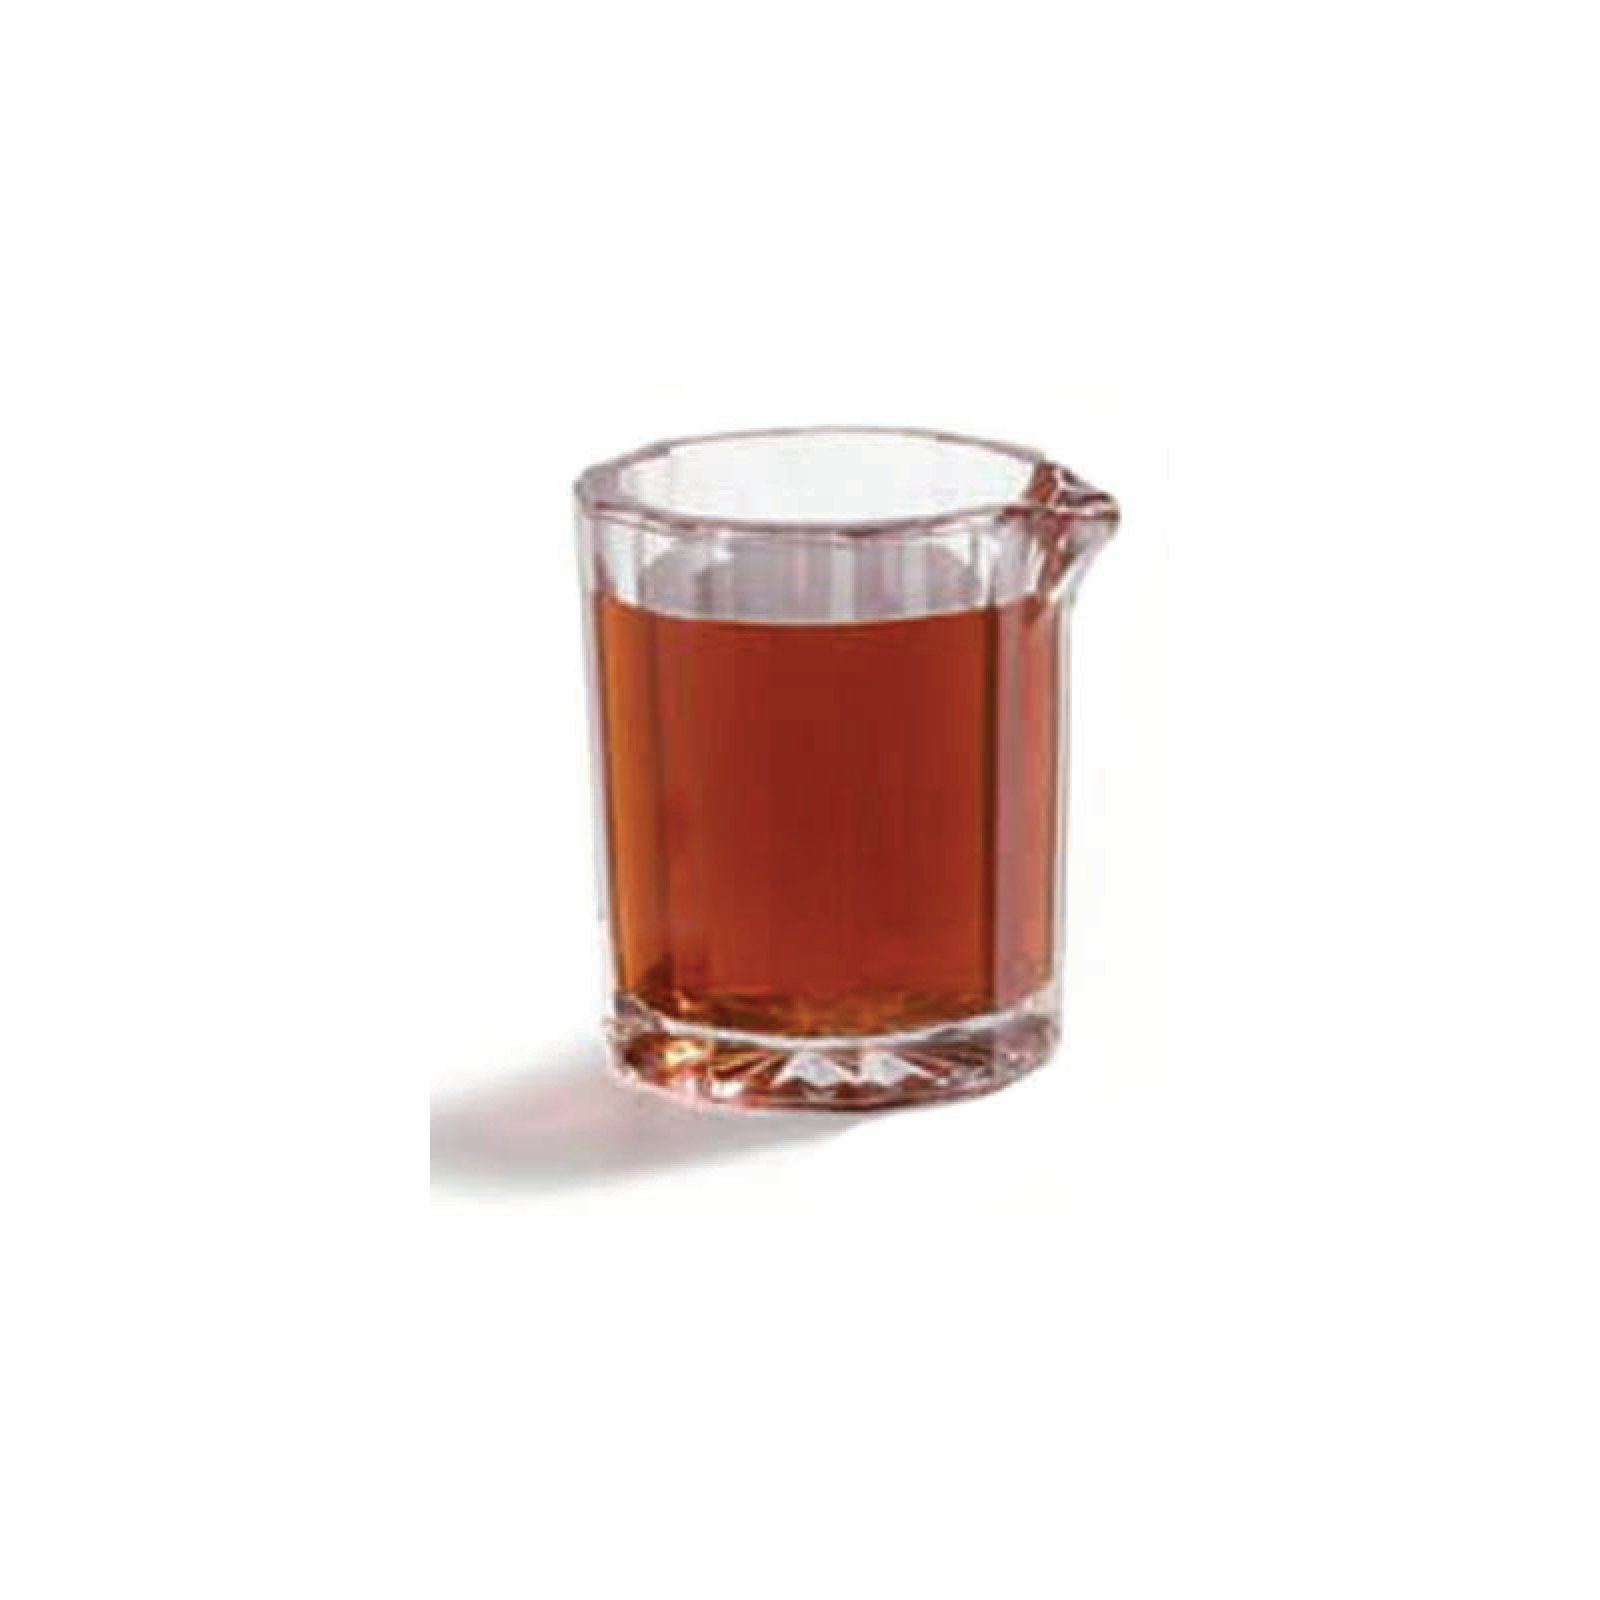 4560 807 syrup pitcher 2 oz cash carry 6 st clear carlisle foodservice products. Black Bedroom Furniture Sets. Home Design Ideas